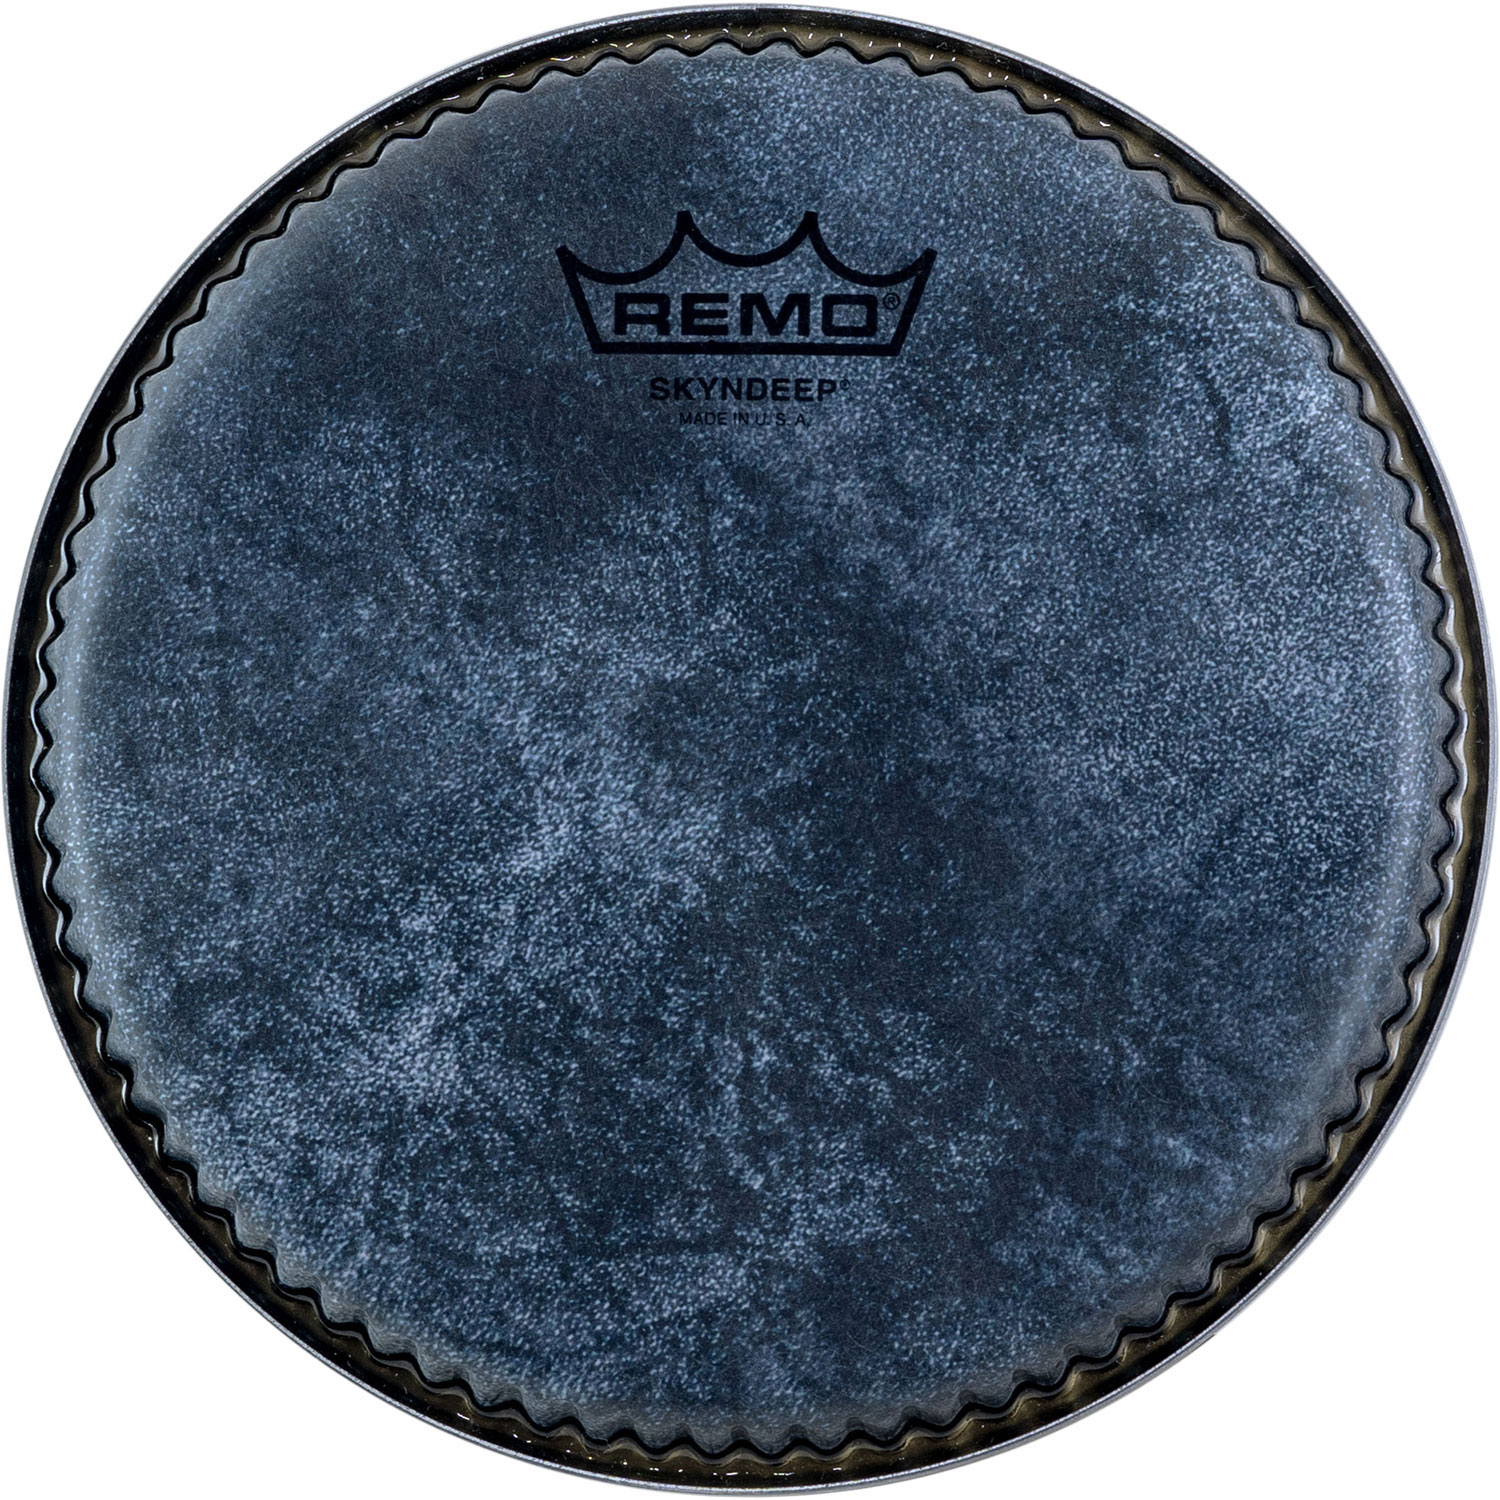 """Remo 8.5"""" R-Series Low Collar Skyndeep Bongo Head with Black Calfskin Graphic"""